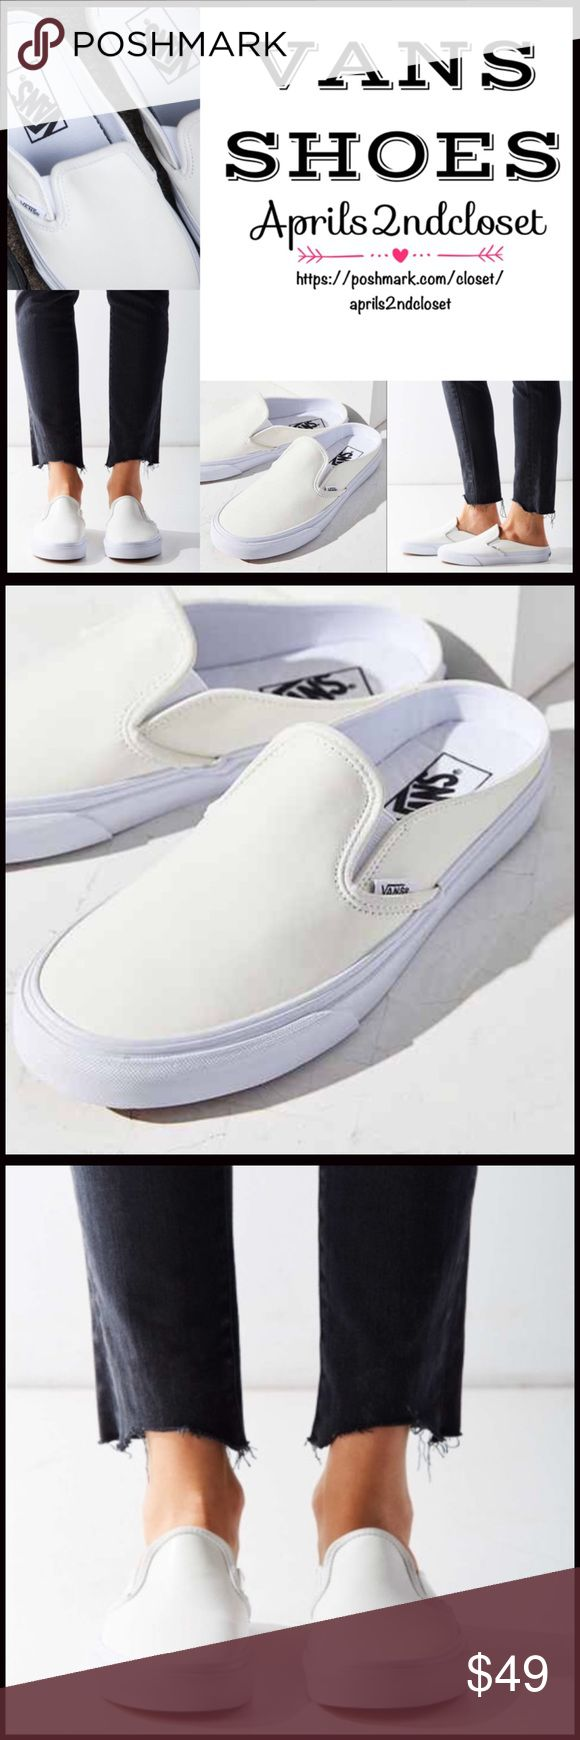 "❗️1-HOUR SALE❗️VANS LEATHER SNEAKER VANS SNEAKERS  * Slip-on & round toe, mule silhouette  * Dual goring at inset  * Genuine leather  * Logo detail  * Non-marking low ballet flat 1"" rubber sole  ****Vans run small, this size 6.5 fits like a size 6 Fabric:Genuine leather & textile, rubber sole  Color: True white Item:p#94400 Ballet flat wedge No Trades ✅ Offers Considered*✅ *Please use the blue 'offer' button to submit an offer. Vans Shoes Sneakers"